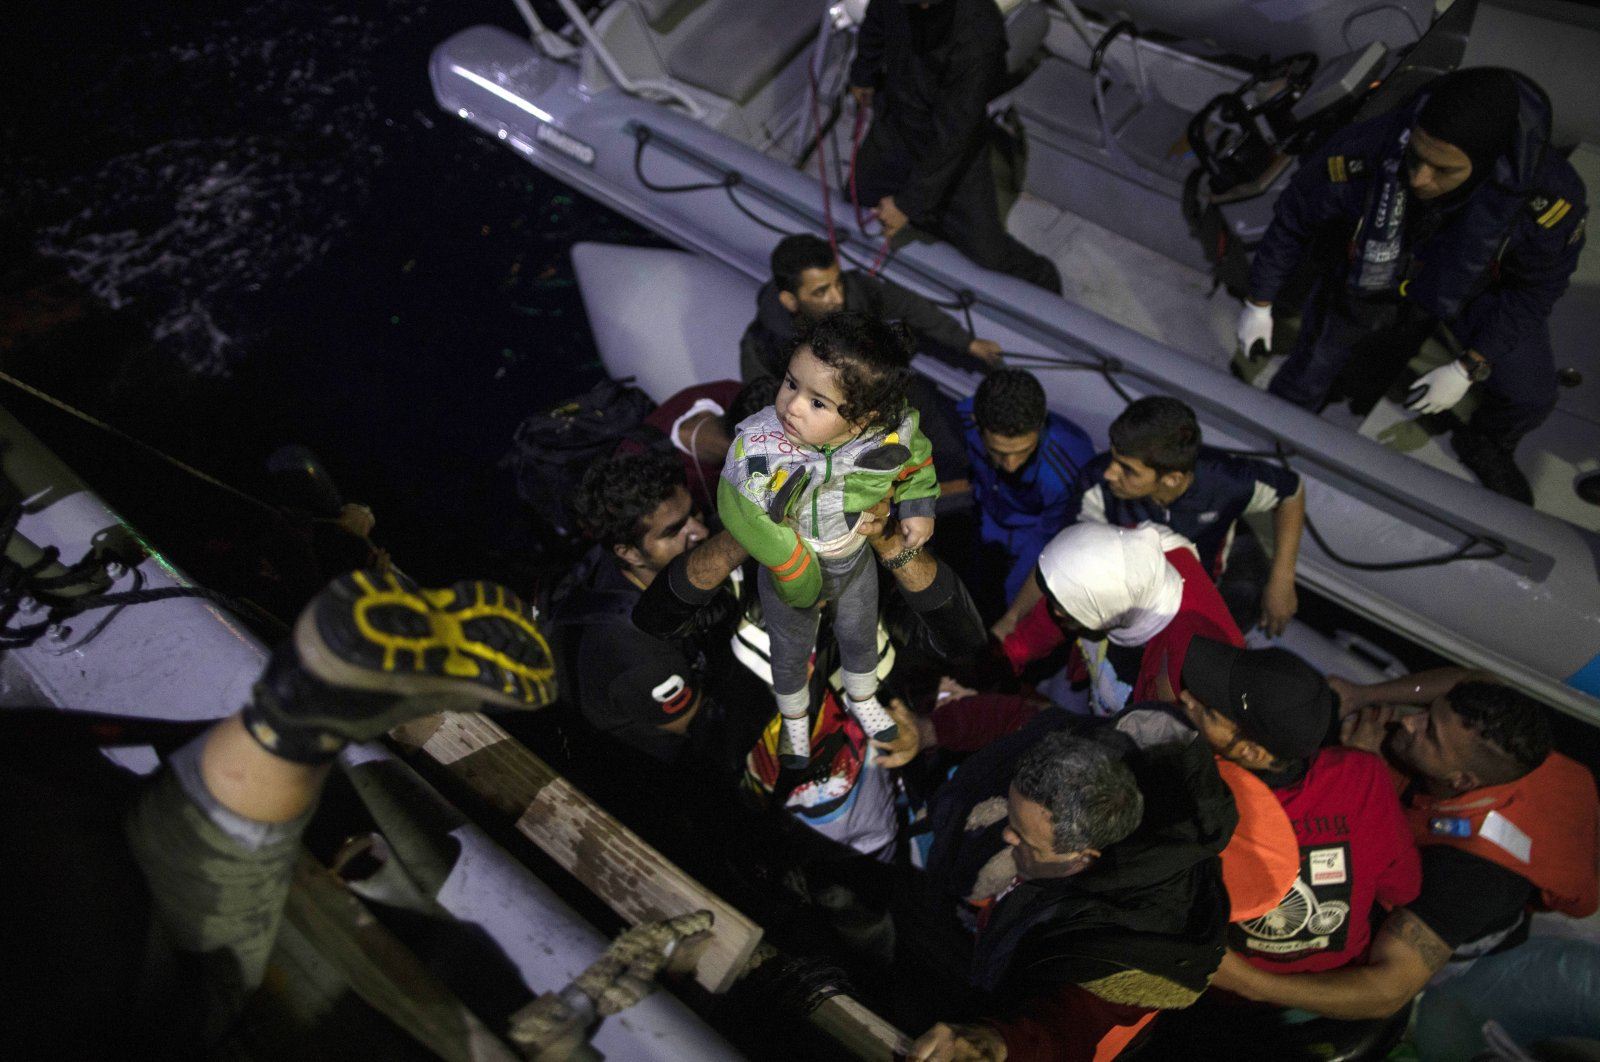 Refugees and migrants board a coast guard ship during a rescue operation, Sept. 26, 2019, near the Greek island of Samos. (AP Photo)